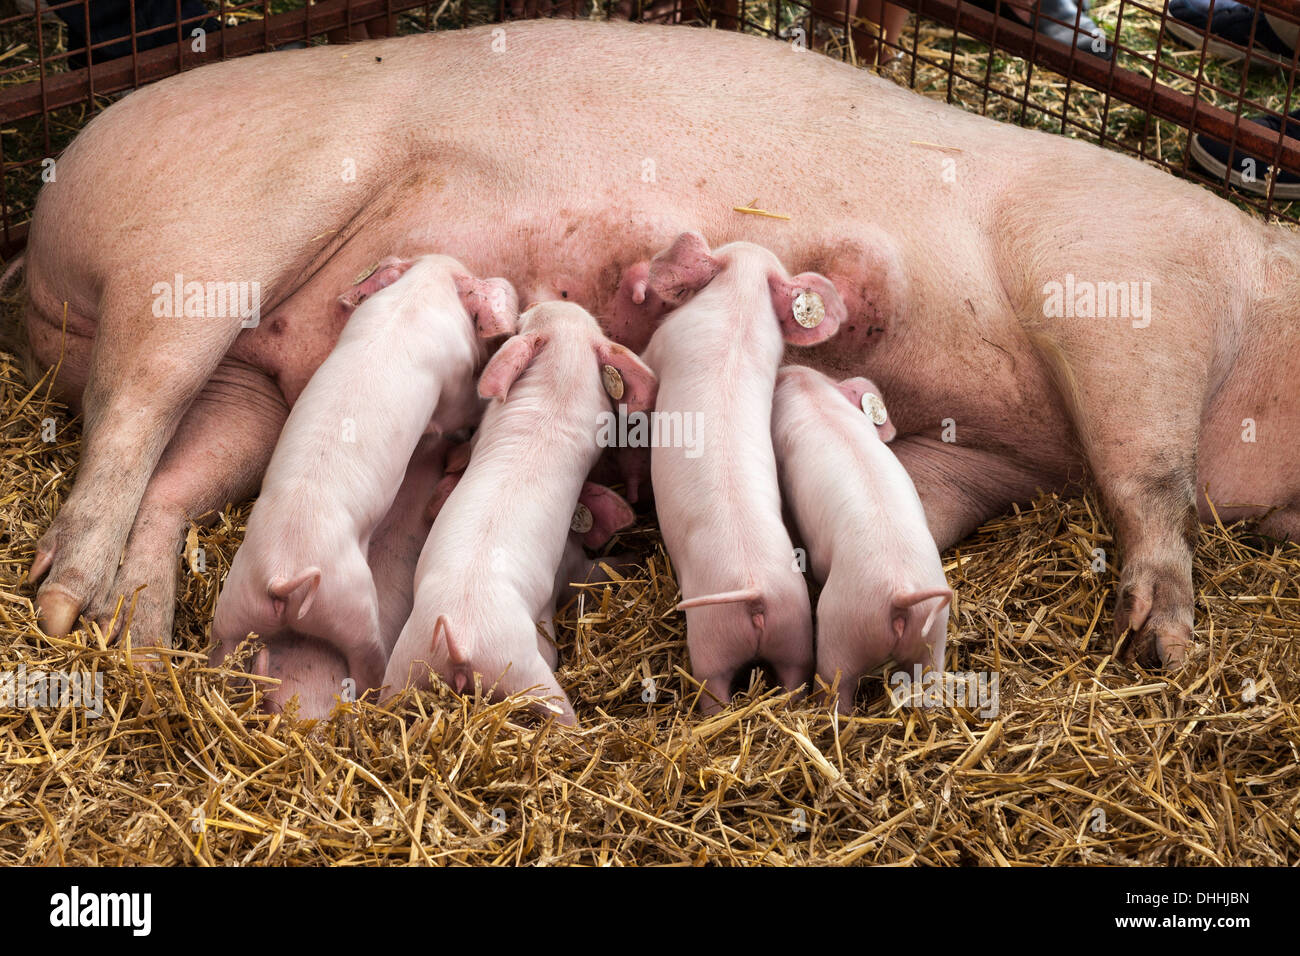 LANDRACE PIGLETS WITH TAGS IN EARS FEEDING FROM SOW IN PEN AT AGRICULTURAL SHOW IN MONMOUTH WALES UK - Stock Image